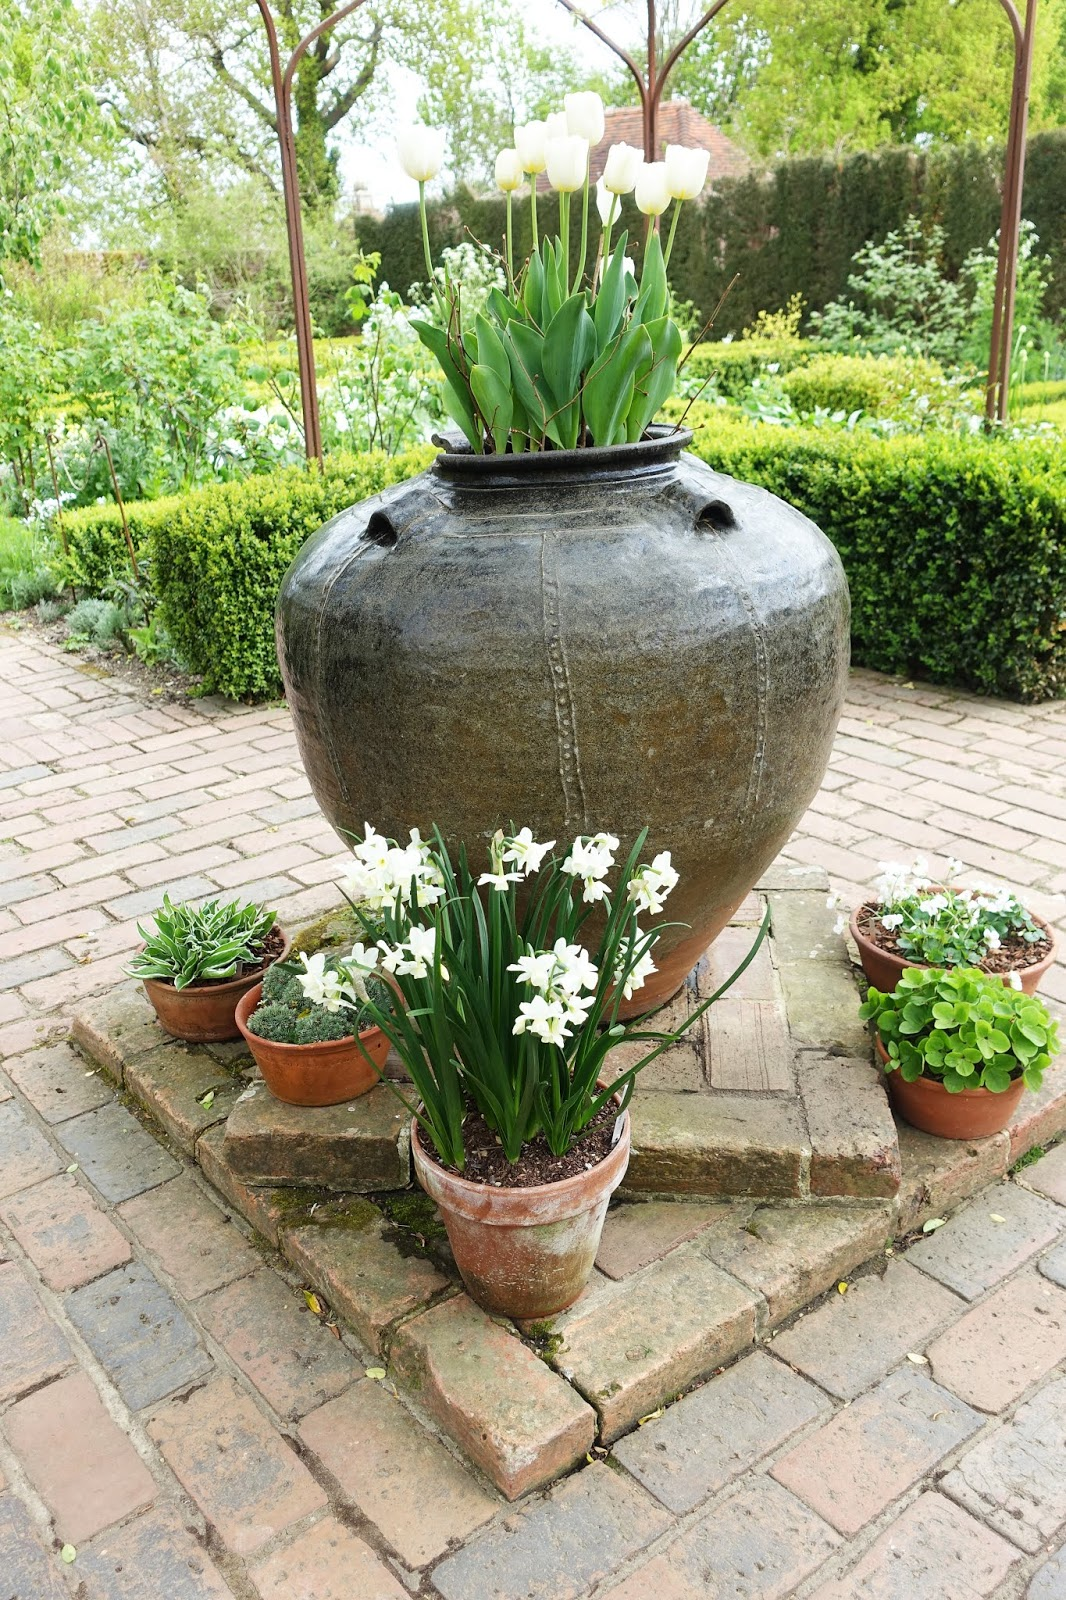 A giant planter and smaller containers with white tulips and narcissus in the springtime white garden at Sissinghurst Castle Garden